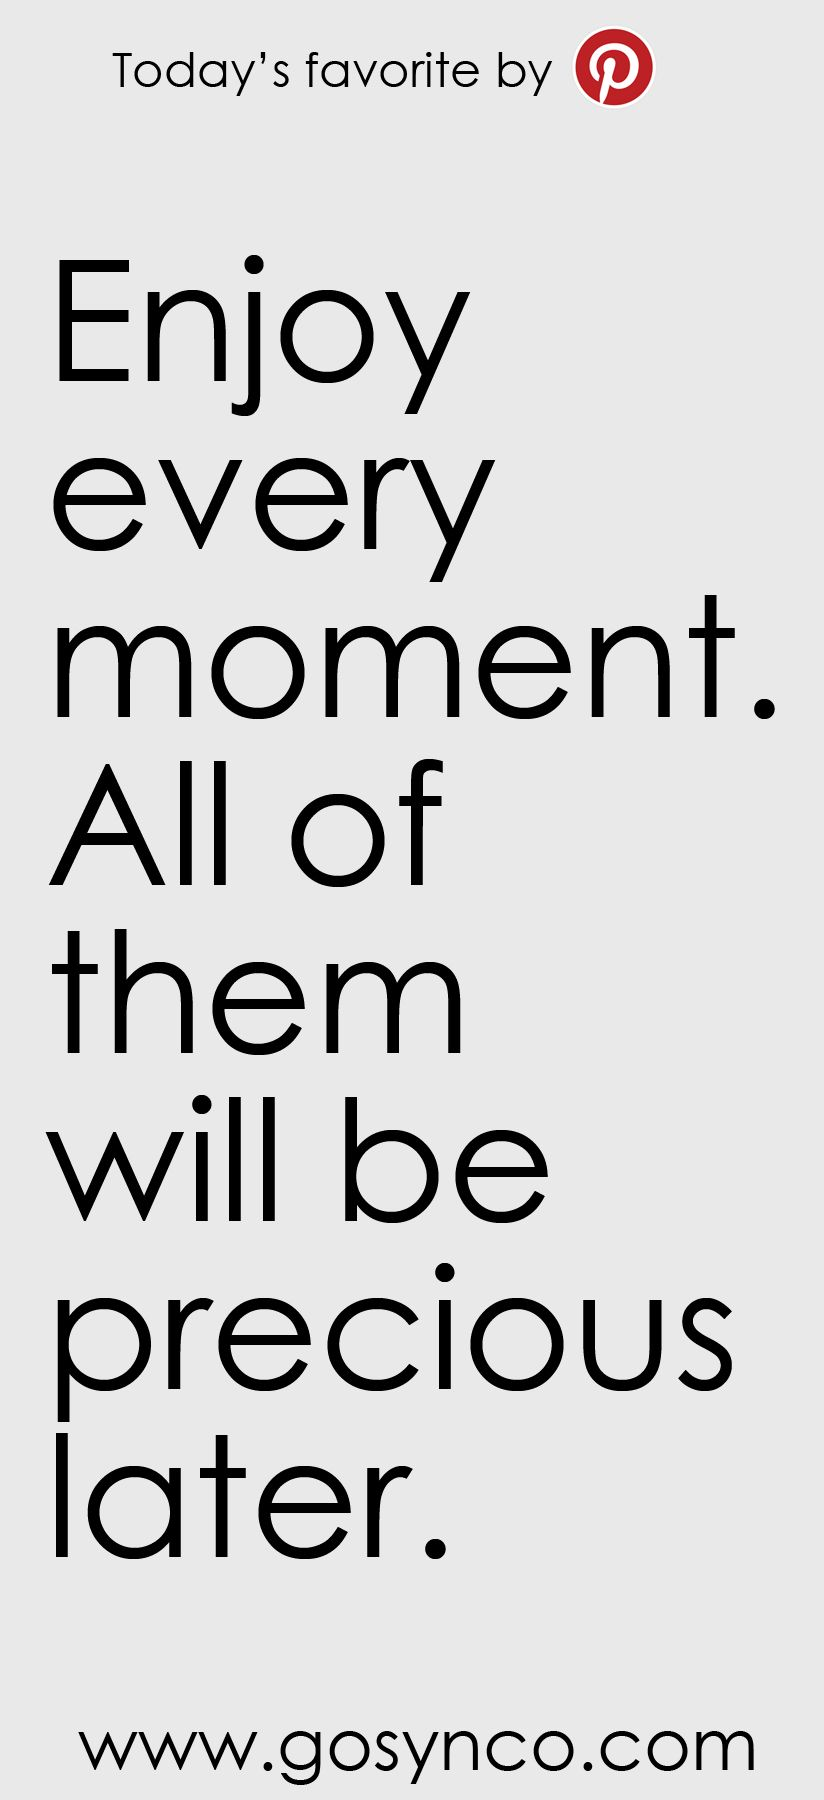 Enjoy Every Moment All Of Them Will Be Precious Later Memories Moments Quotes Moments Quotes Inspirational Words Enjoy Every Moment Quotes